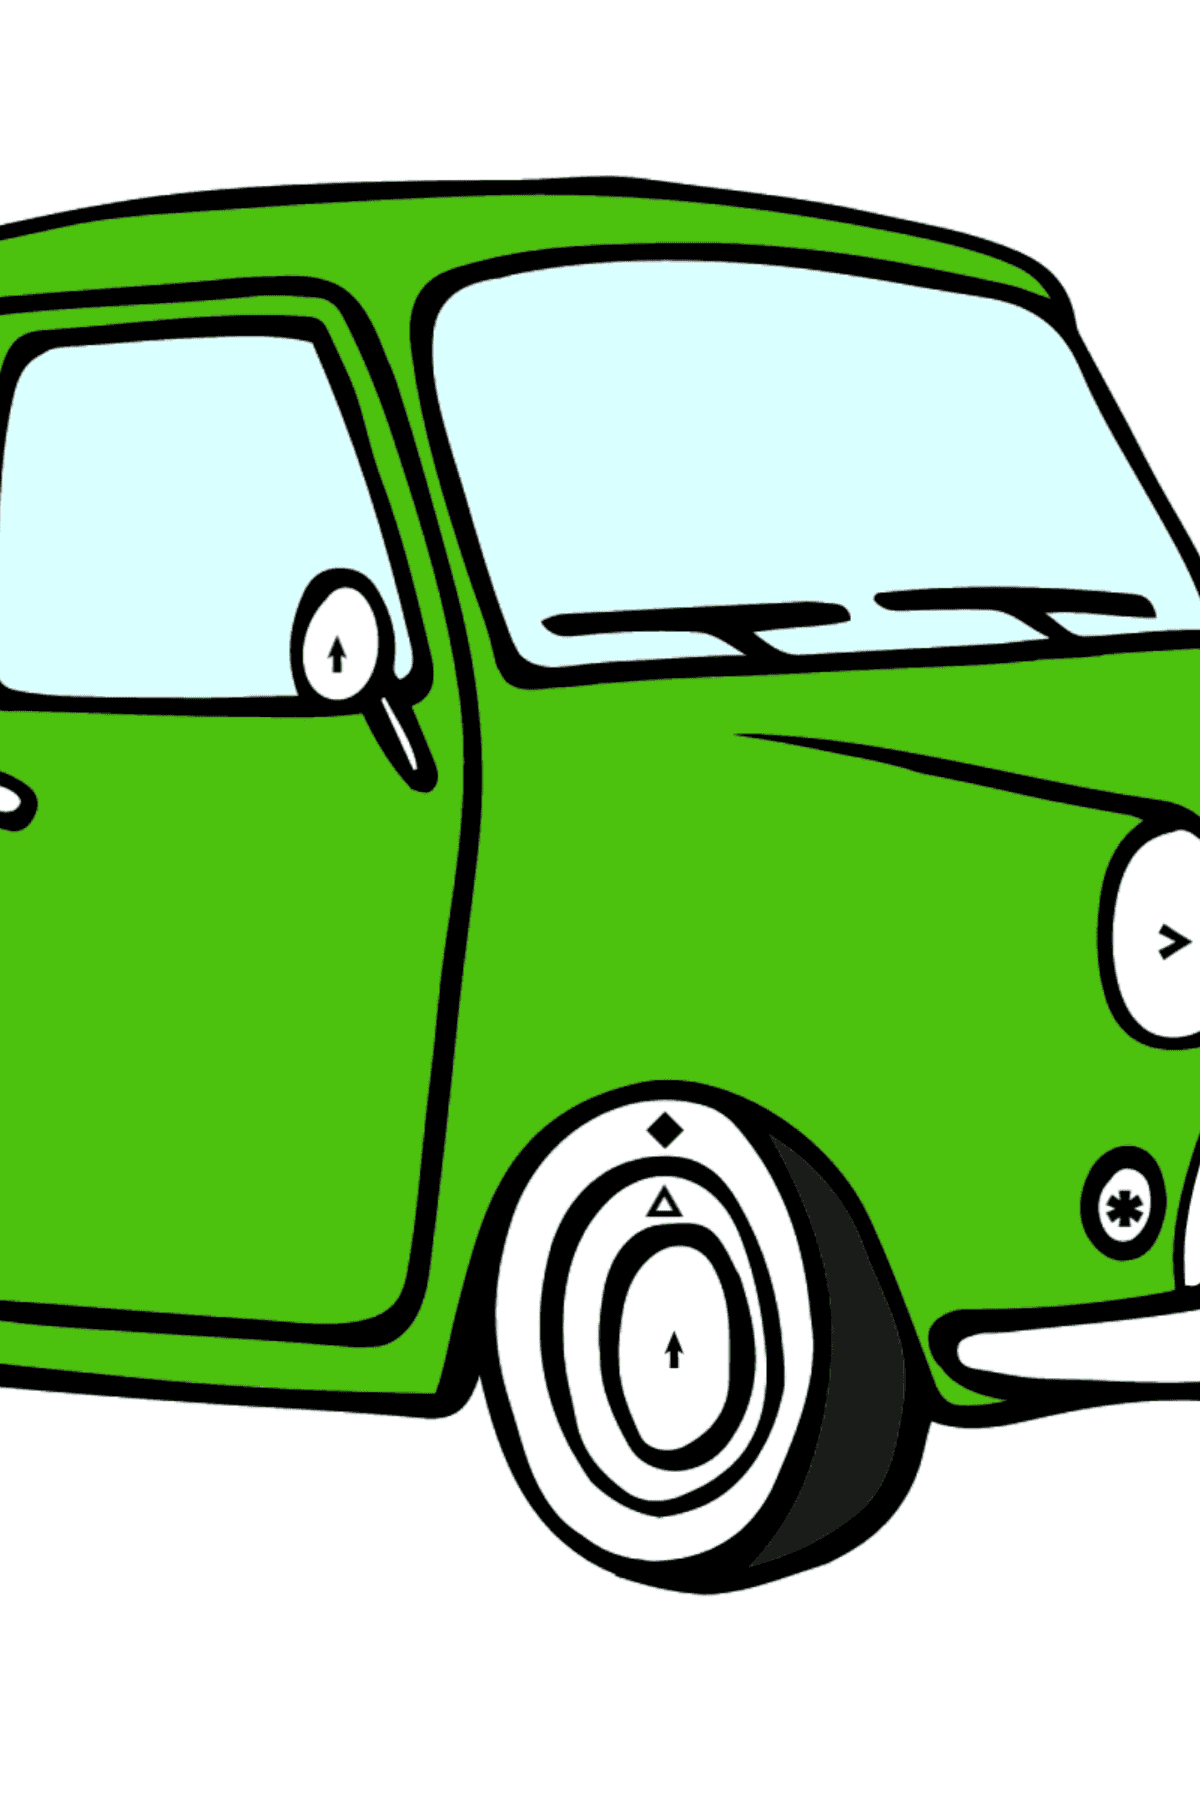 Fiat 500 coloring page (green car) - Coloring by Symbols for Kids